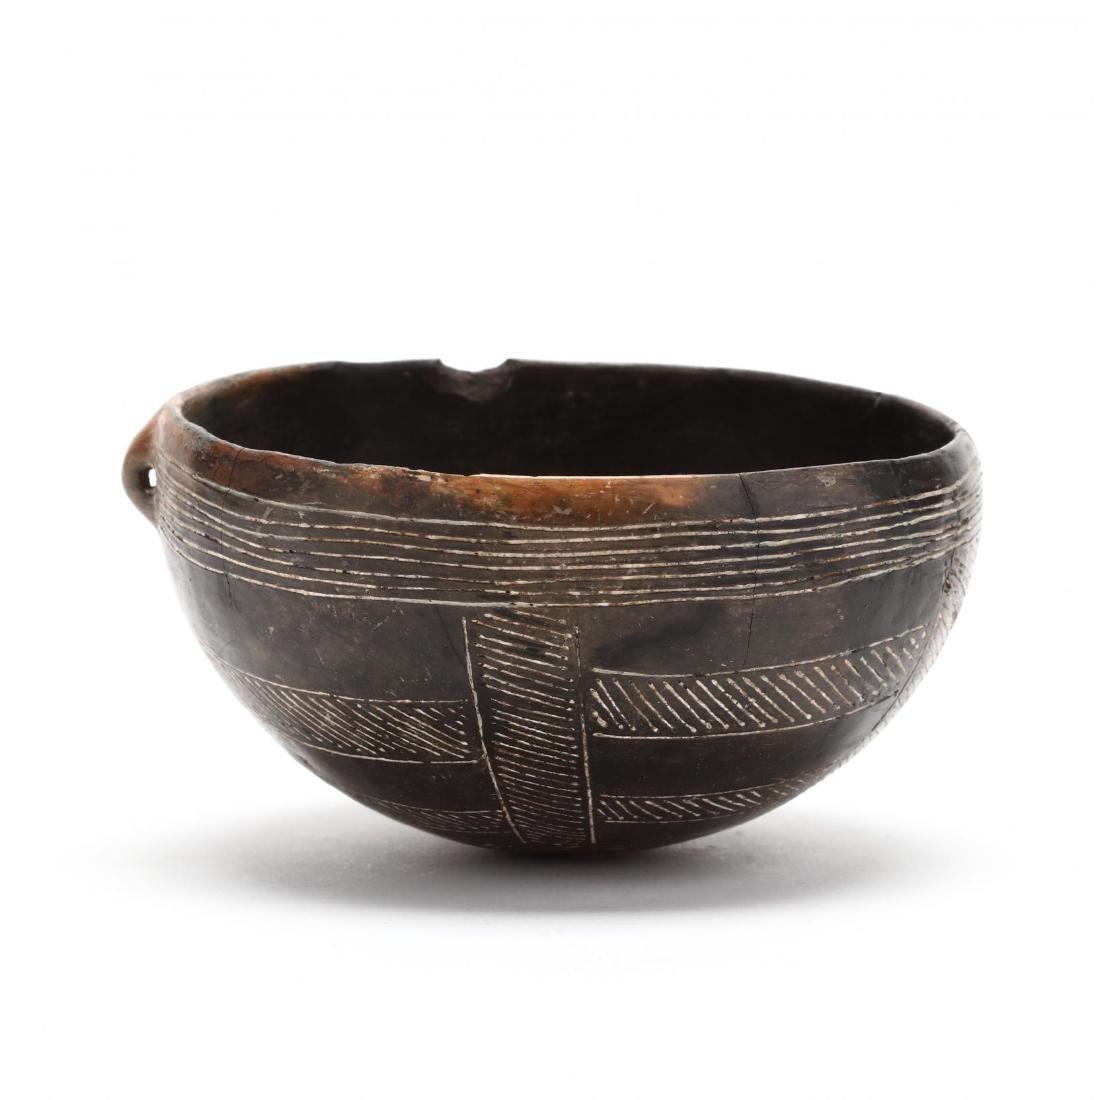 Cypriot Early Bronze Age Polished Black Ware Bowl